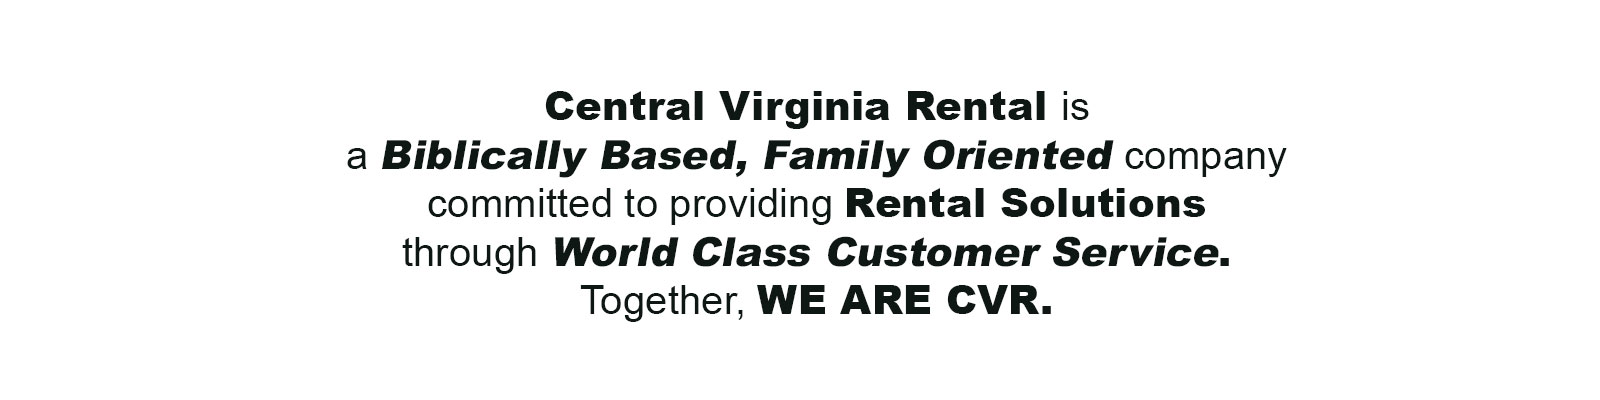 Party rentals in Central Virginia